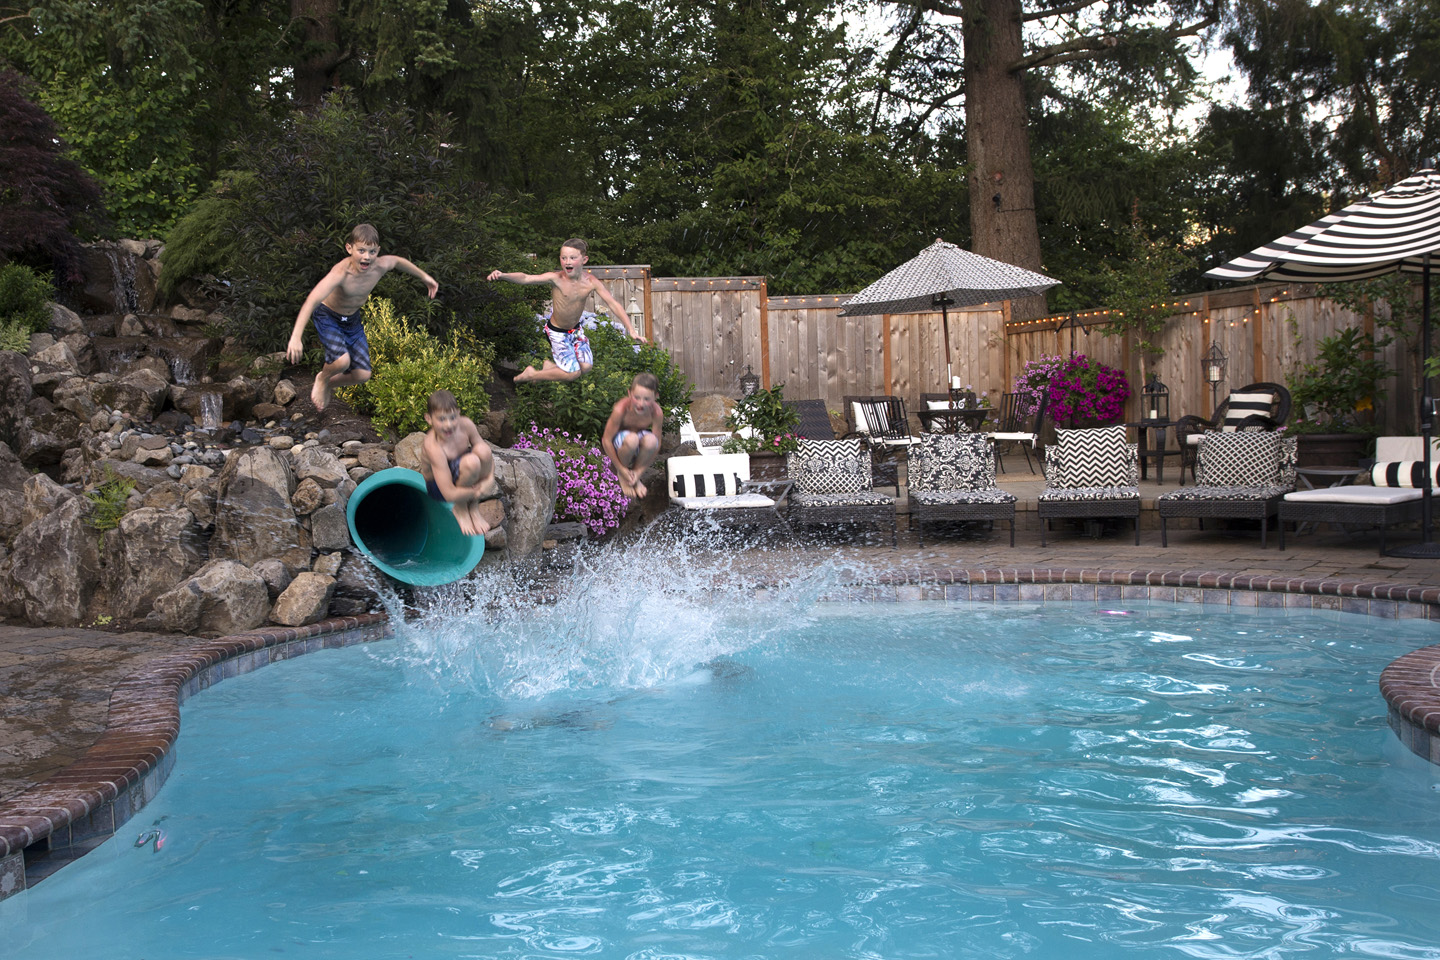 Pools are full of family fun - nestled close to outdoor living rooms they can also boast hot tubs